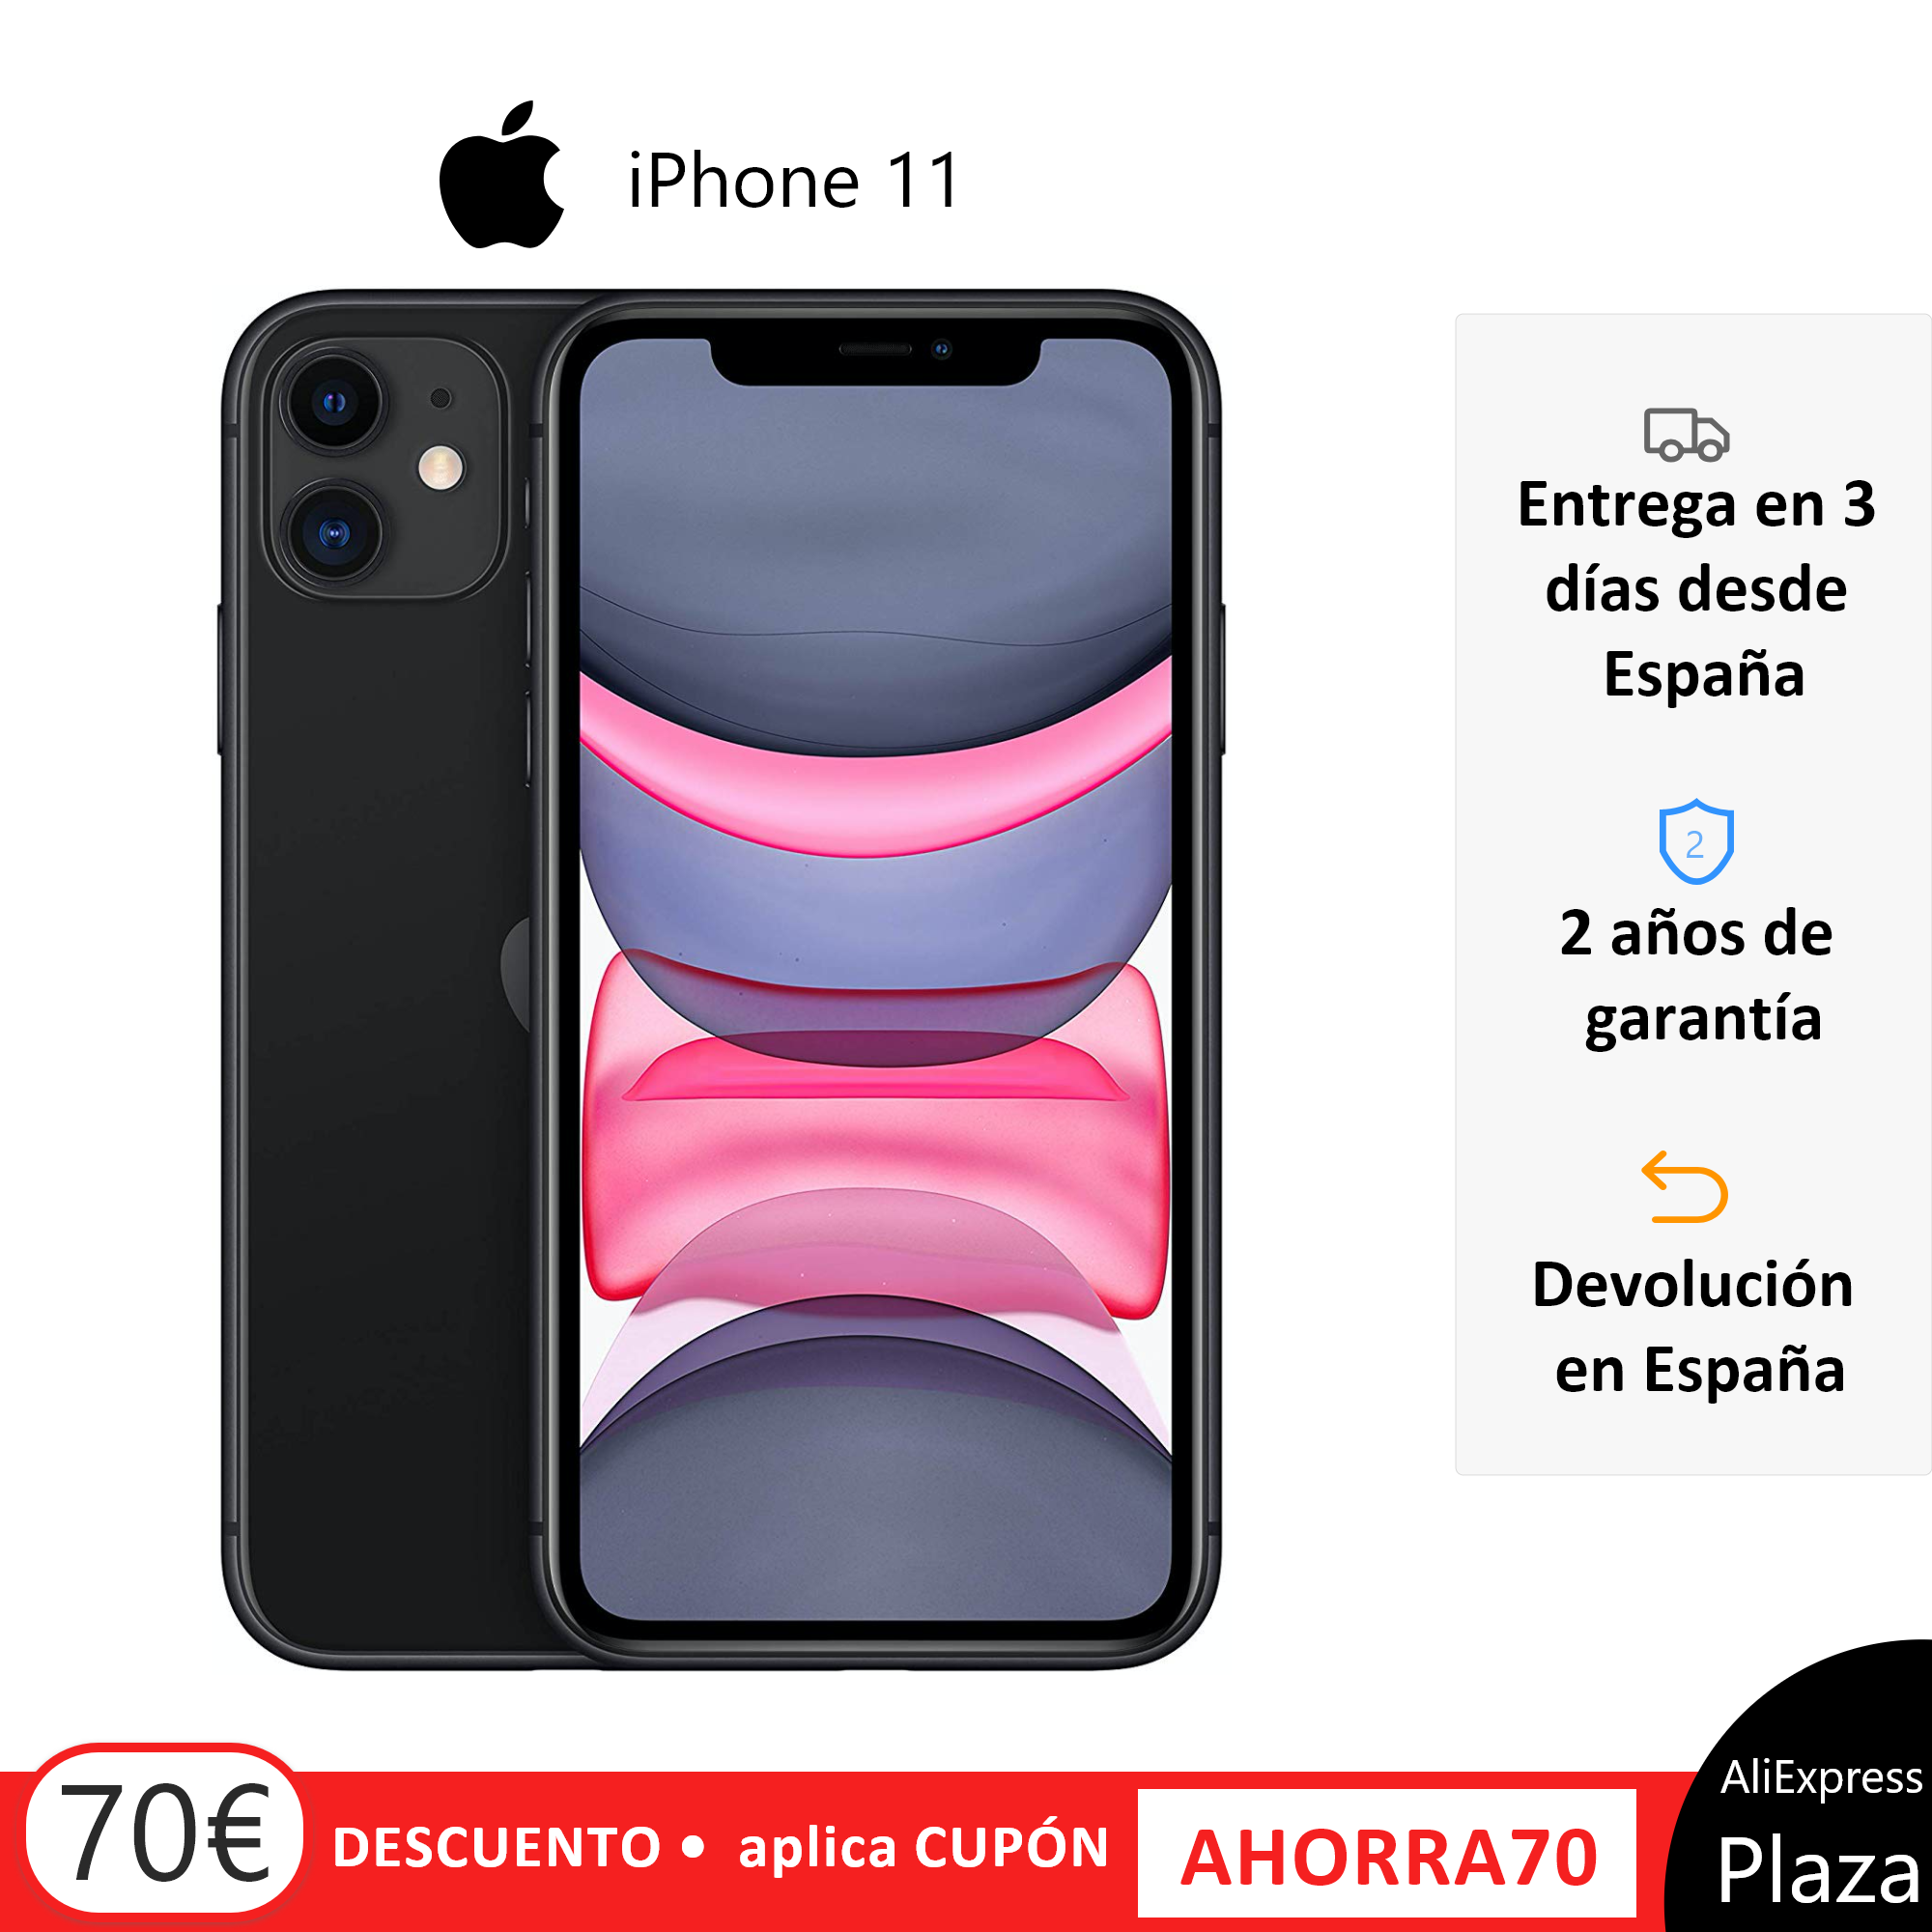 Apple IPhone 11 Smartphone (64 GB ROM, 4 GB RAM, Black Color, 12 MP Rear Camera, 12 MP Selfie Camera, 6.1